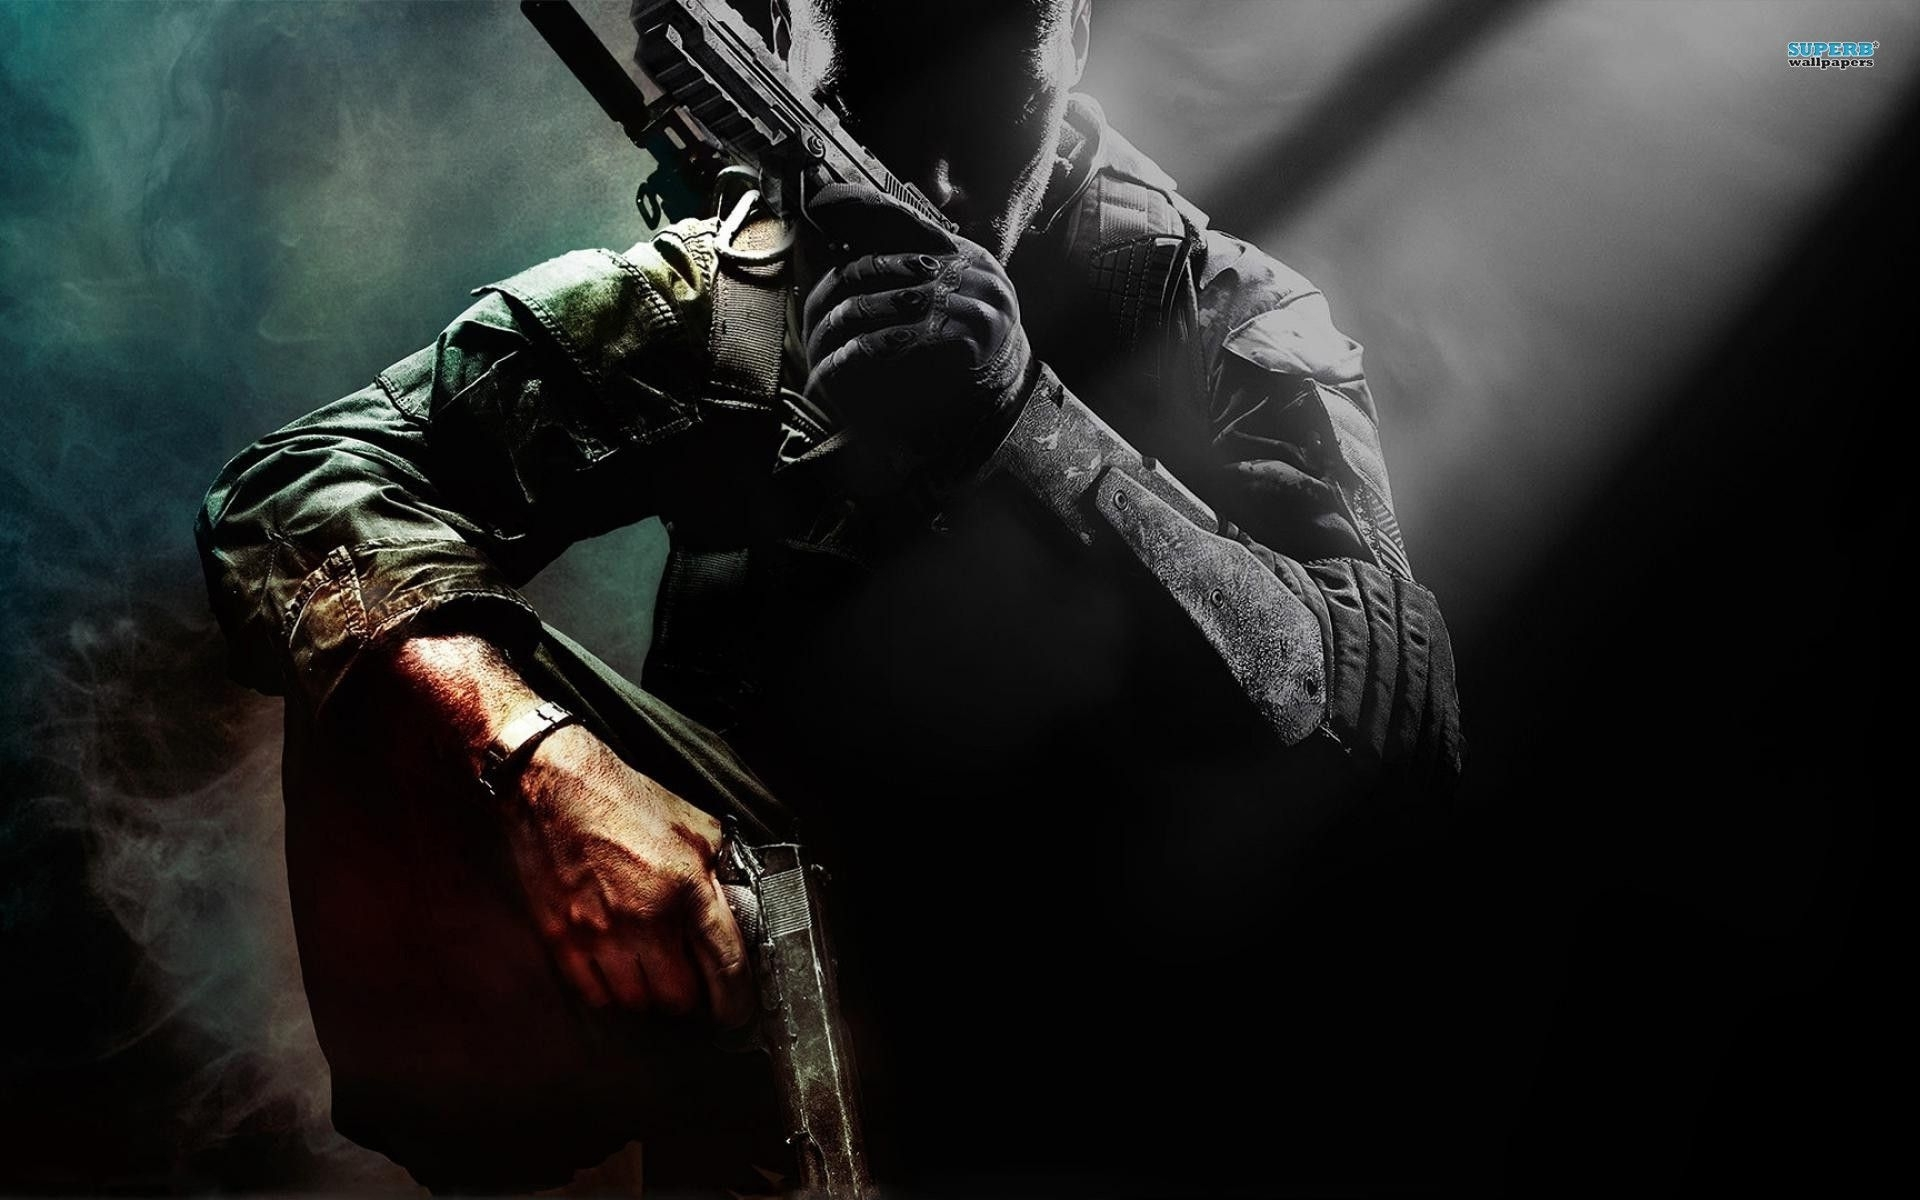 call of duty black ops wallpapers wallpaper | hd wallpapers